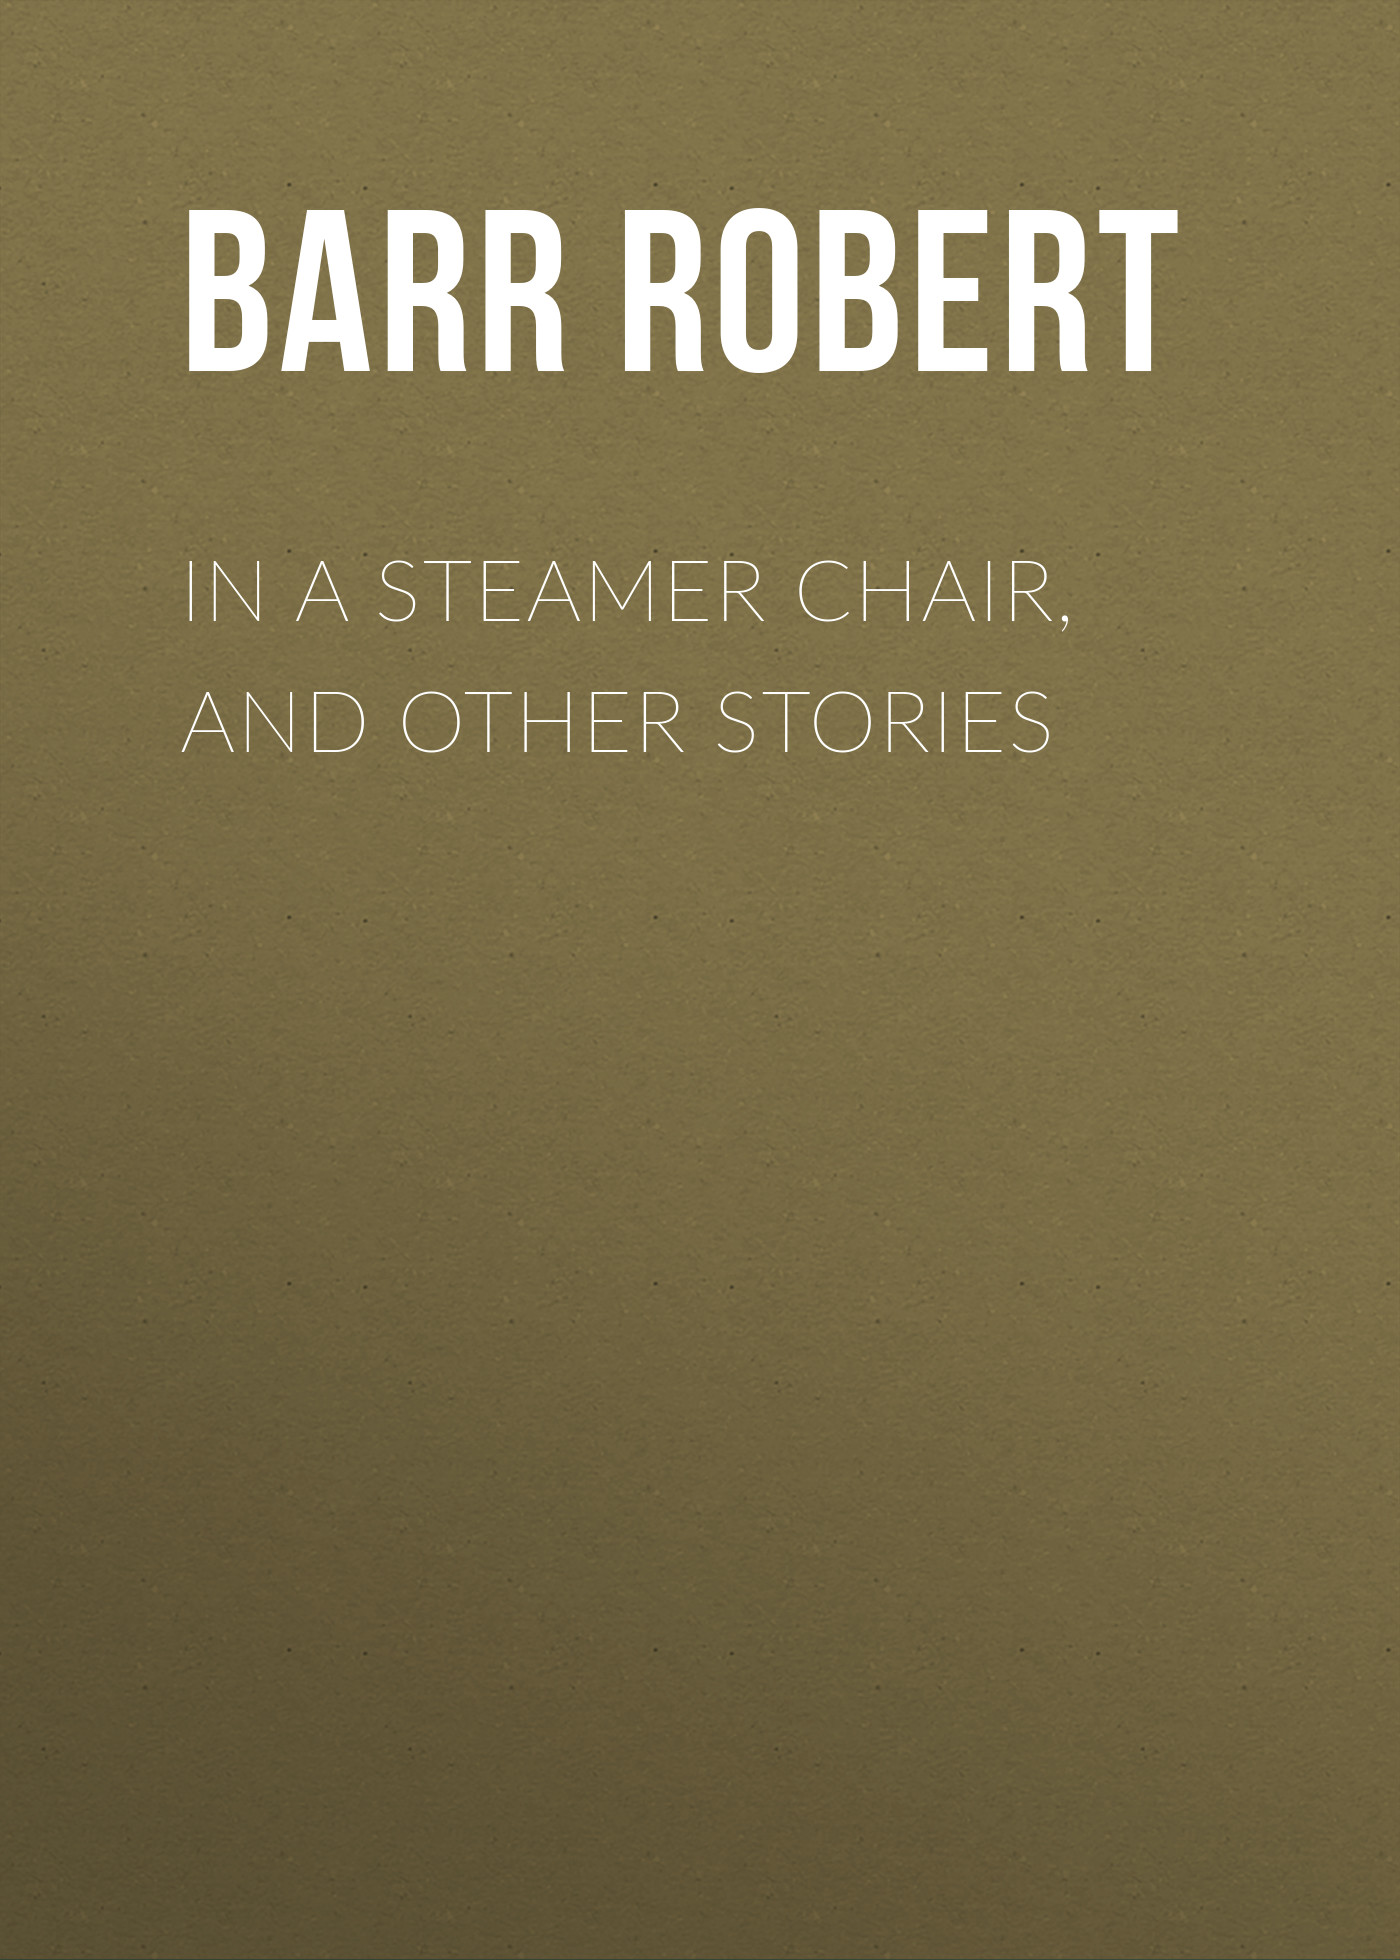 Barr Robert In a Steamer Chair, and Other Stories monsters and other stories